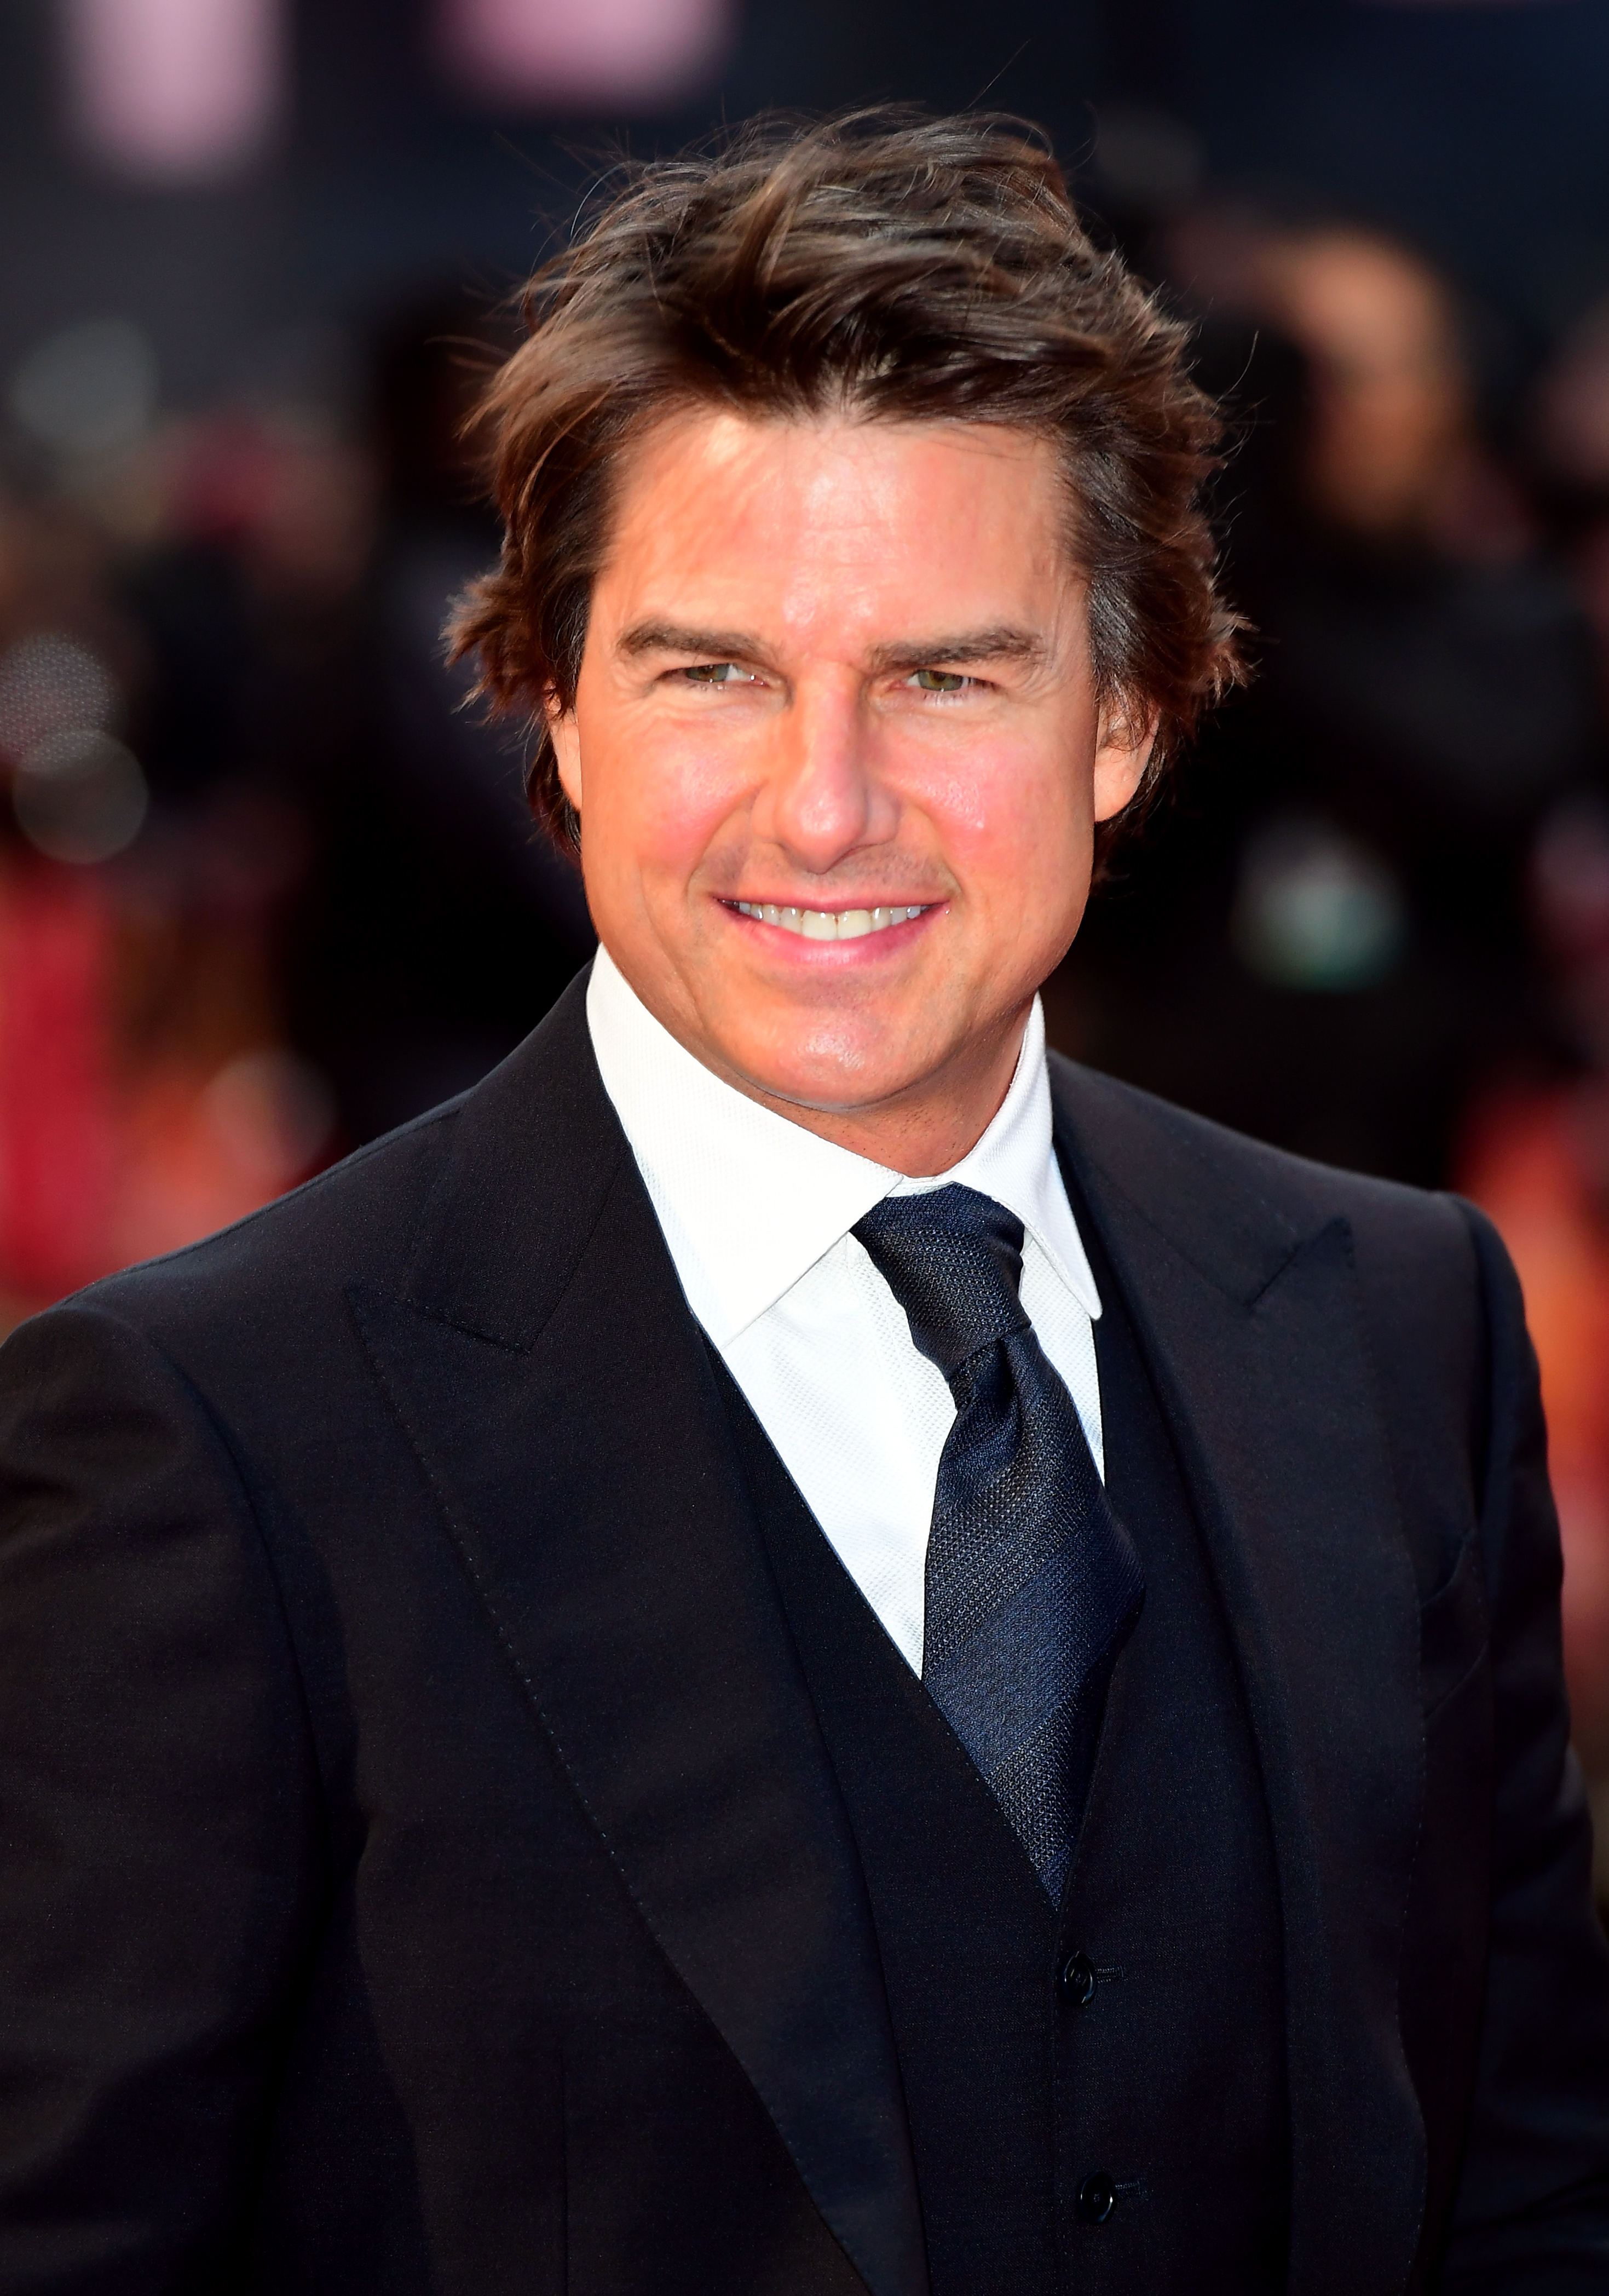 American Made director says Tom Cruise is 'ageing in ... Tom Cruise